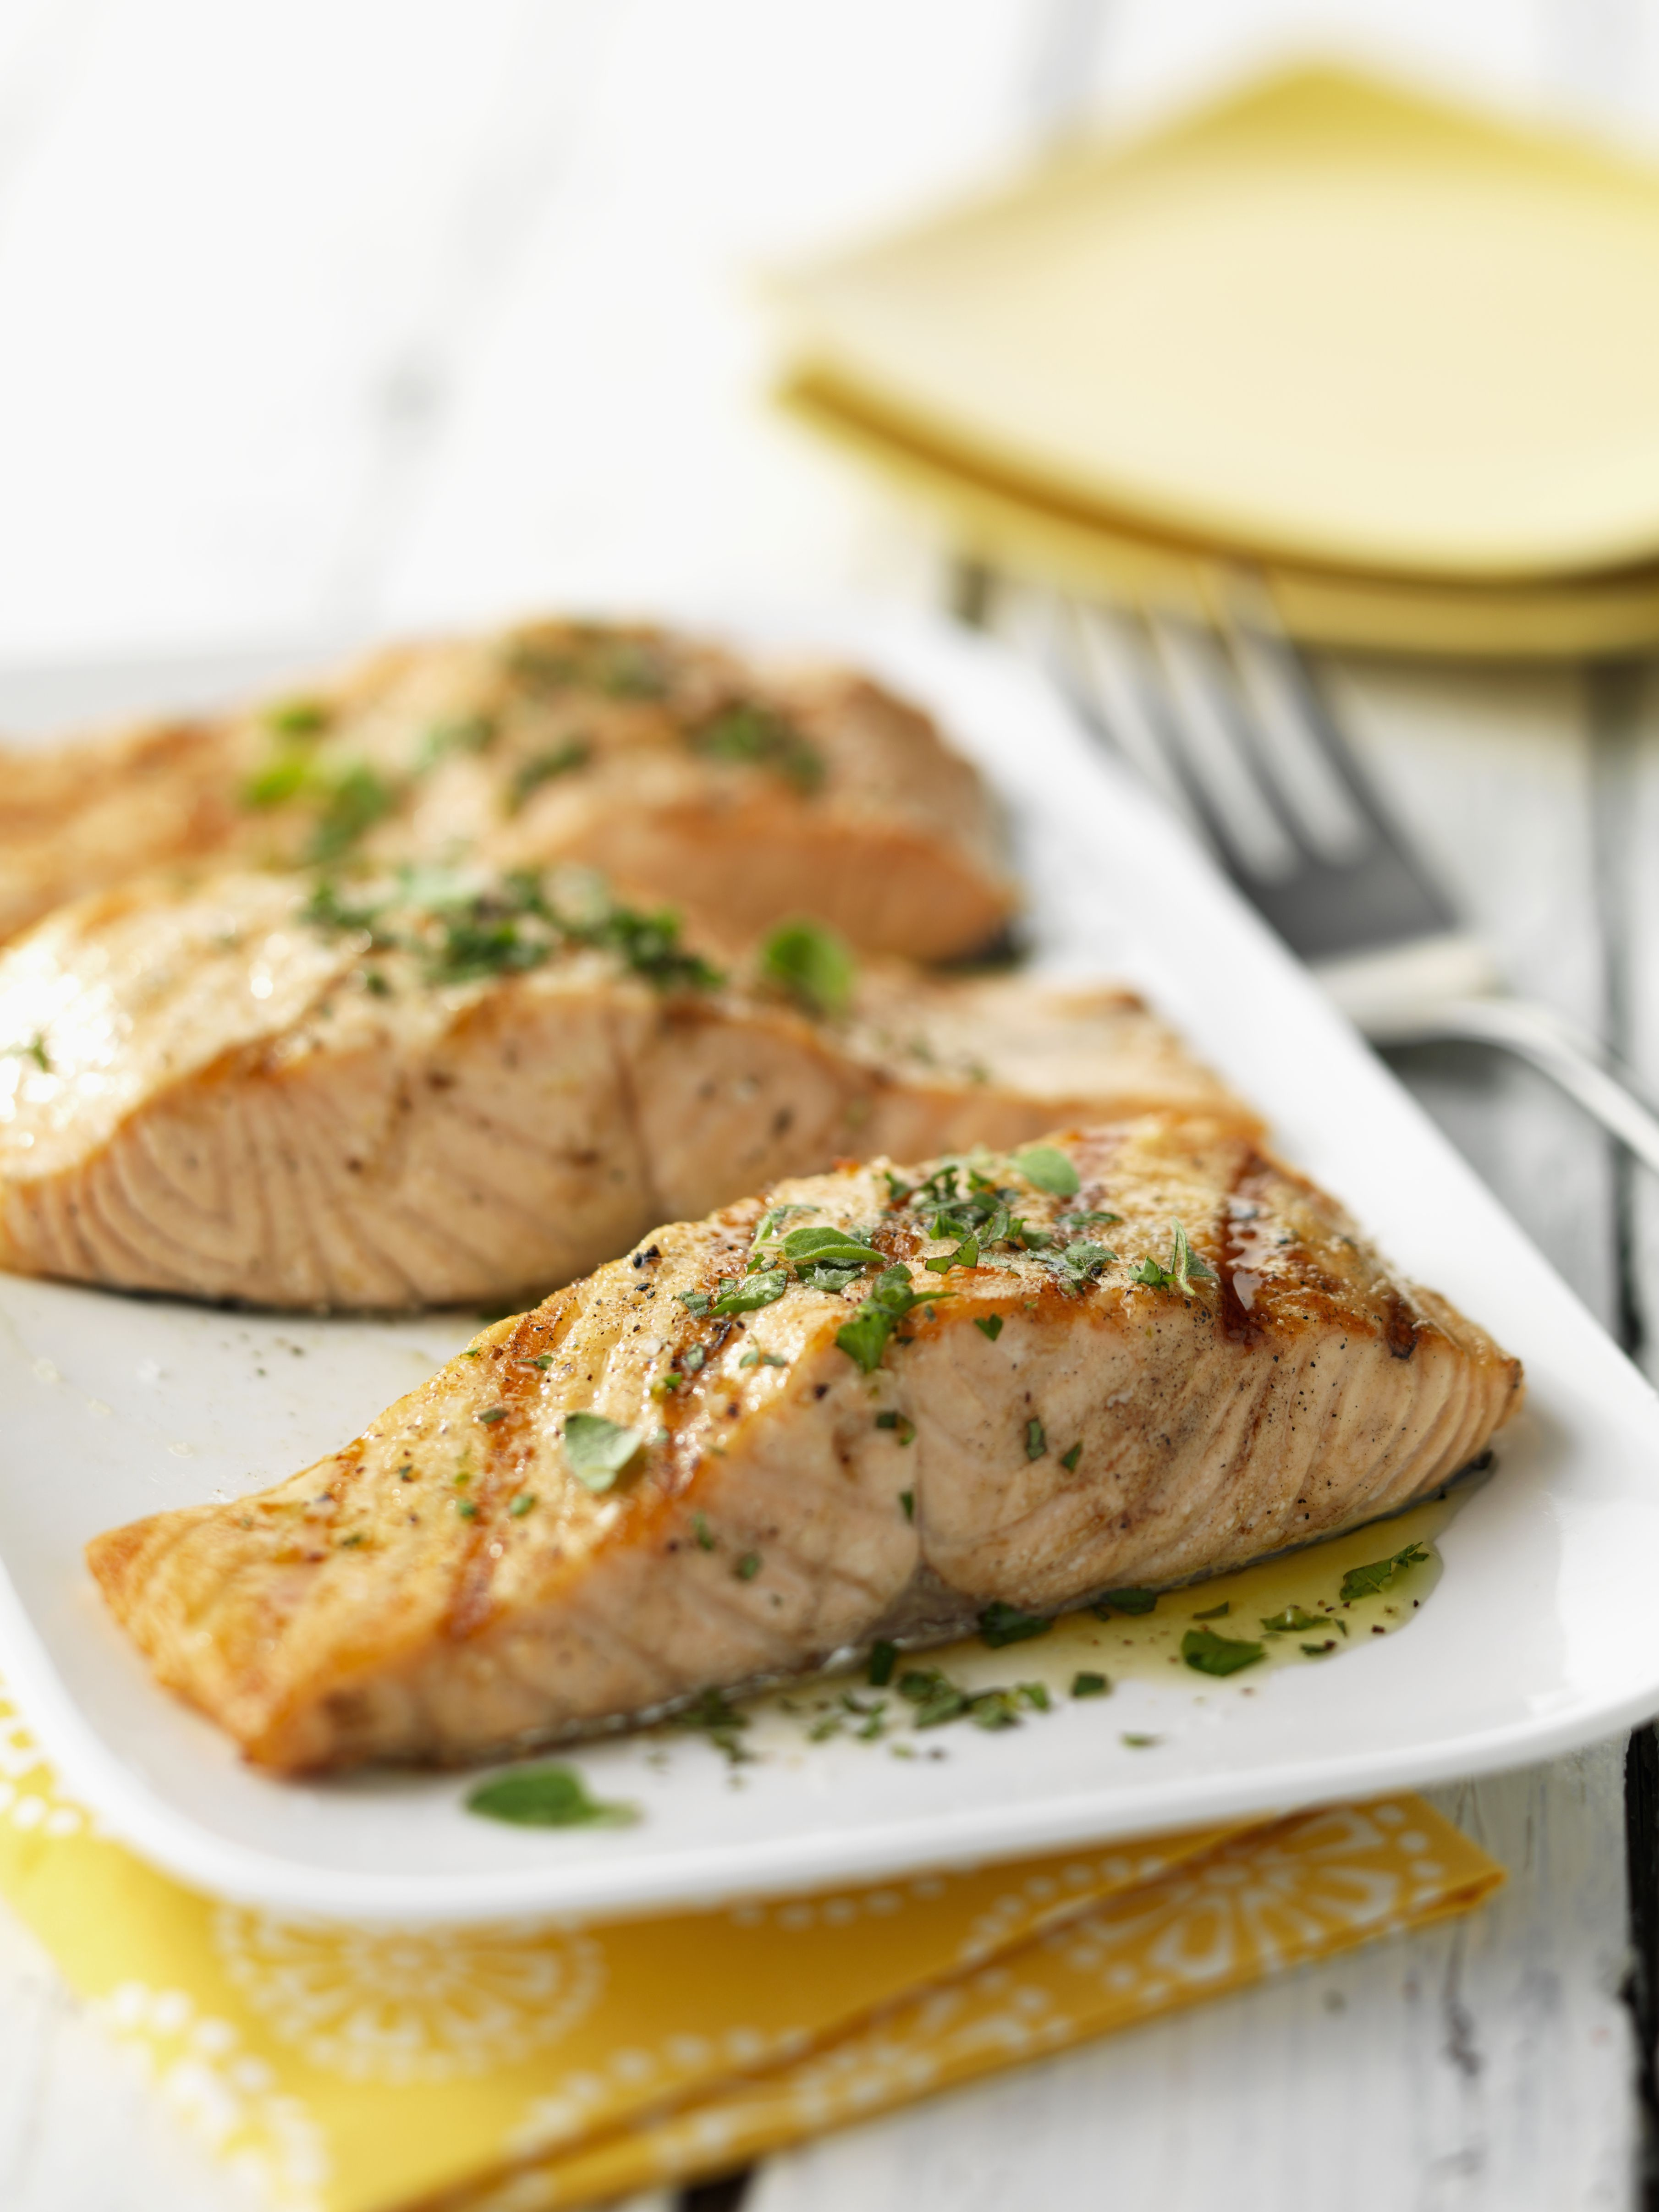 Baked salmon with garlic recipe fast and easy baked salmon with citrus balsamic vinaigrette ccuart Gallery